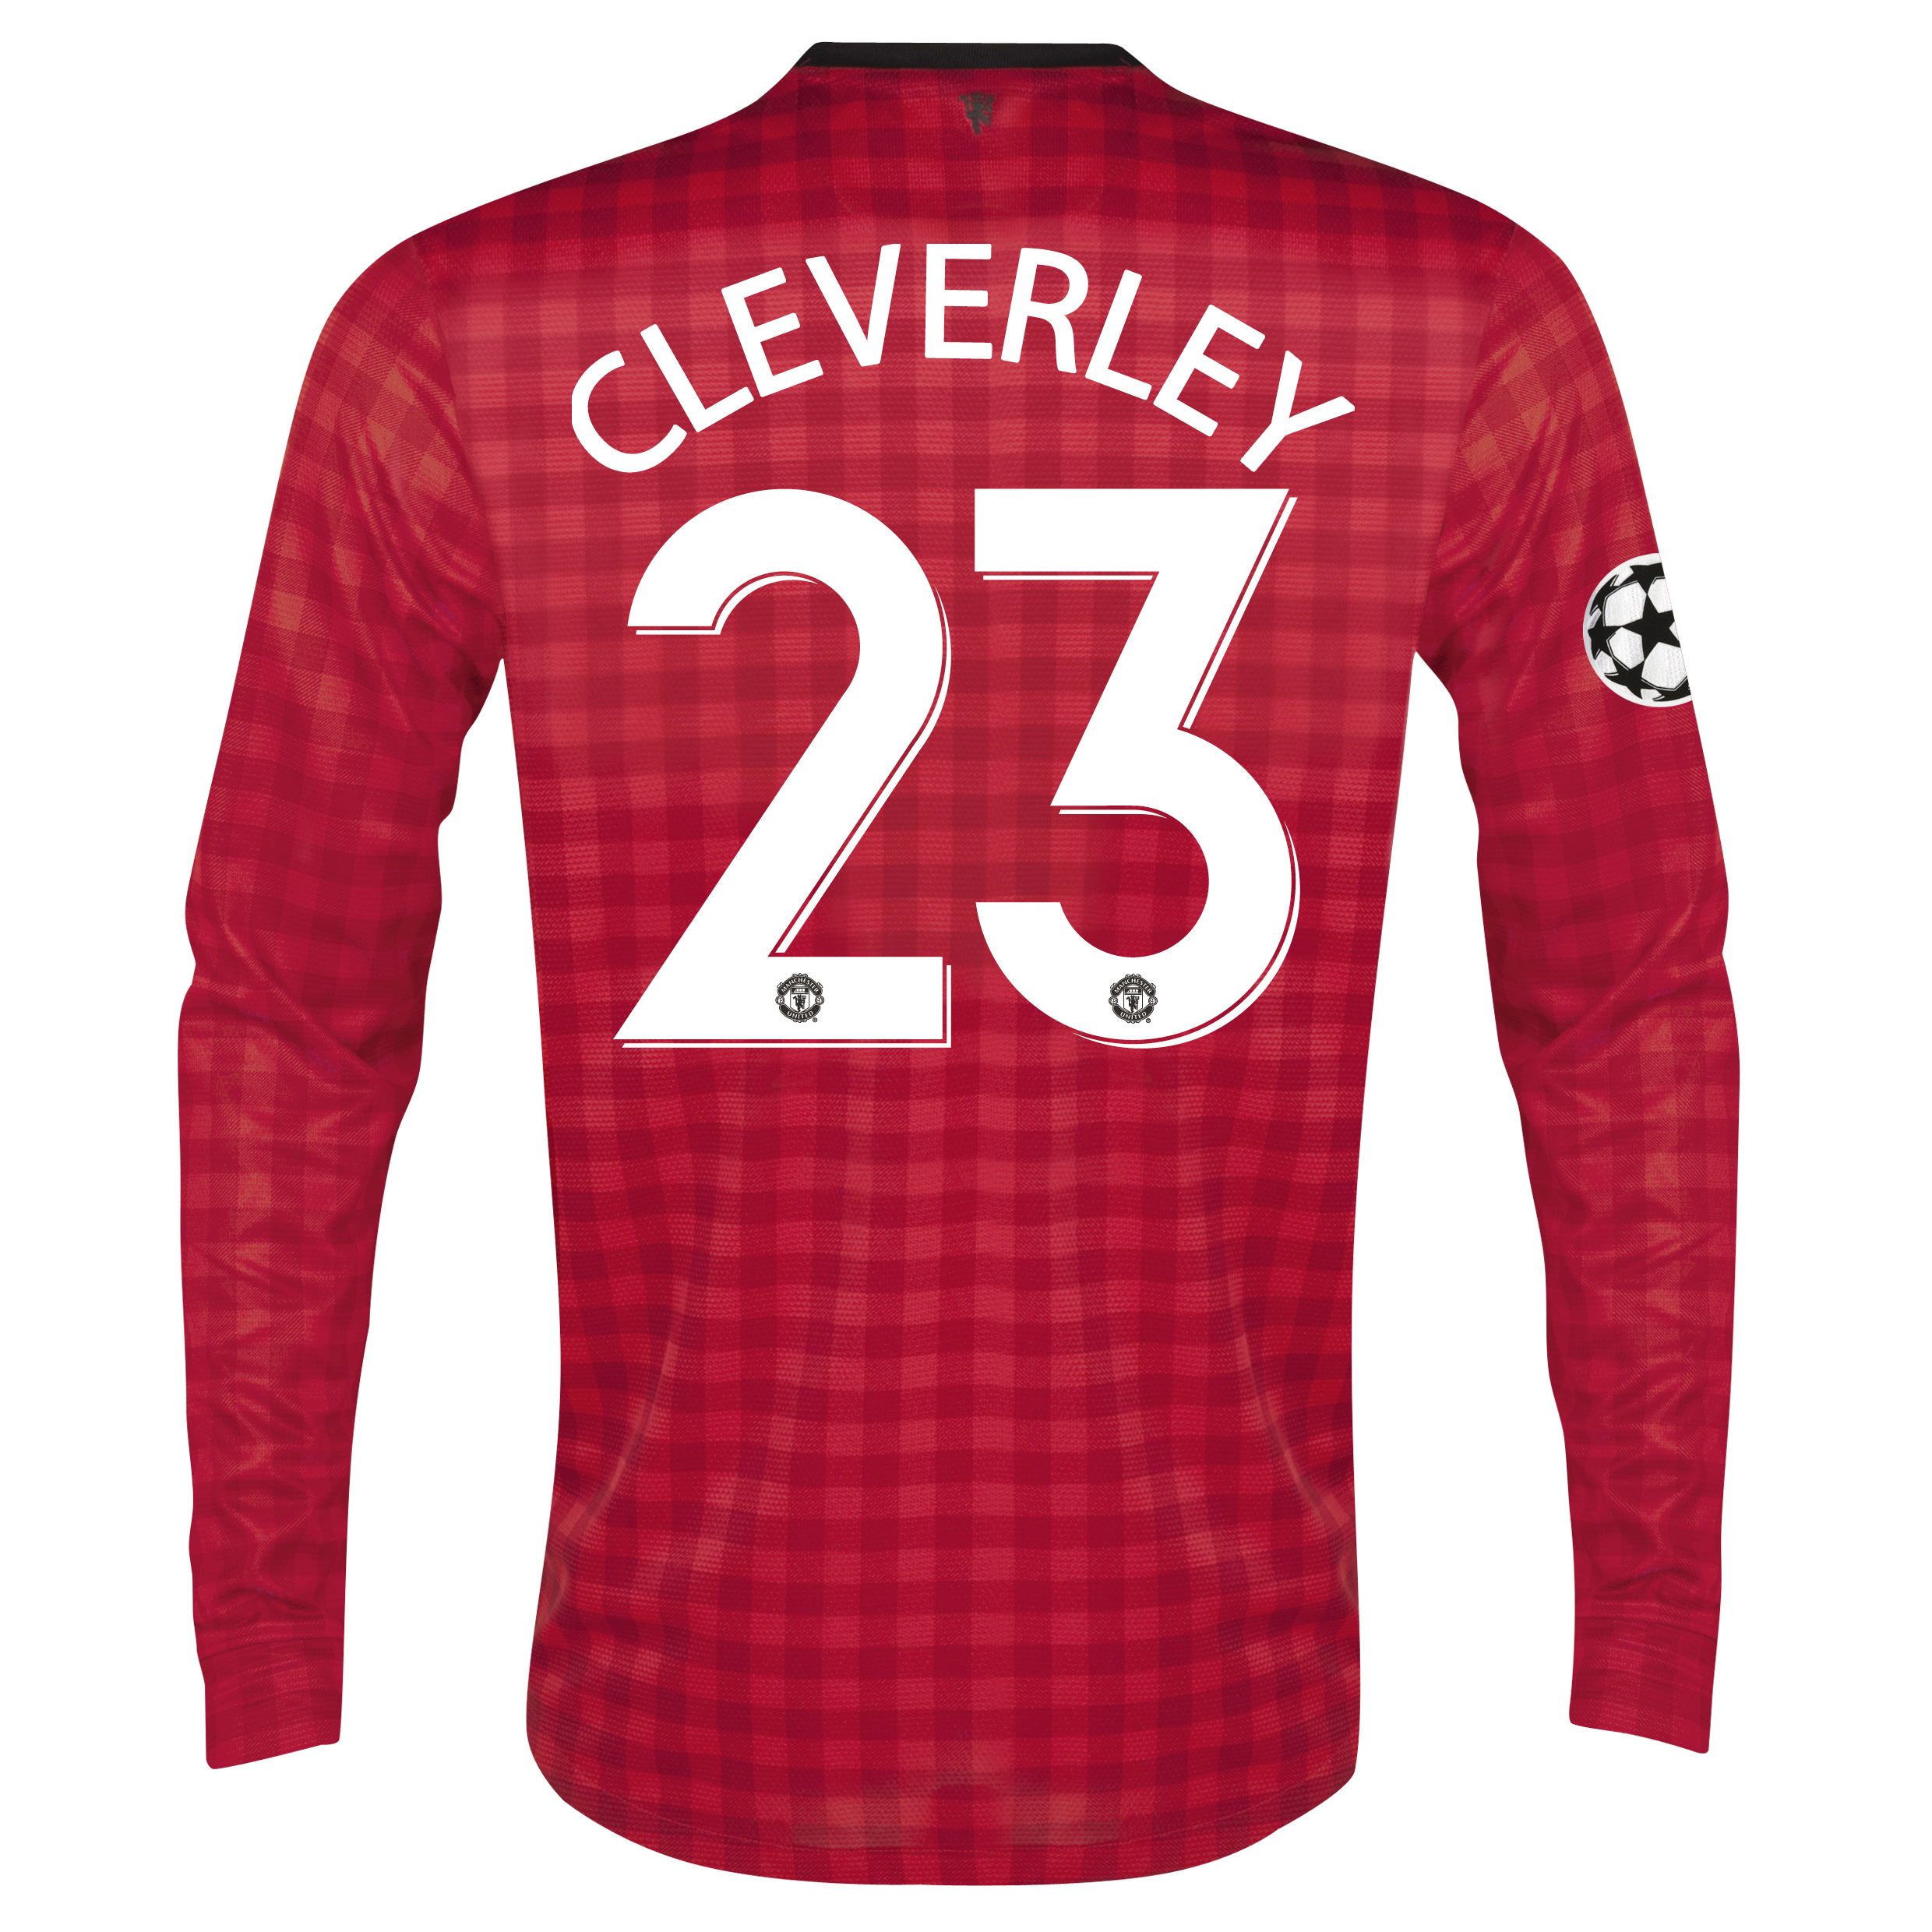 Man United UEFA Champions League Home Shirt 2012/13 - Long Sleeved with Cleverley 23 printing